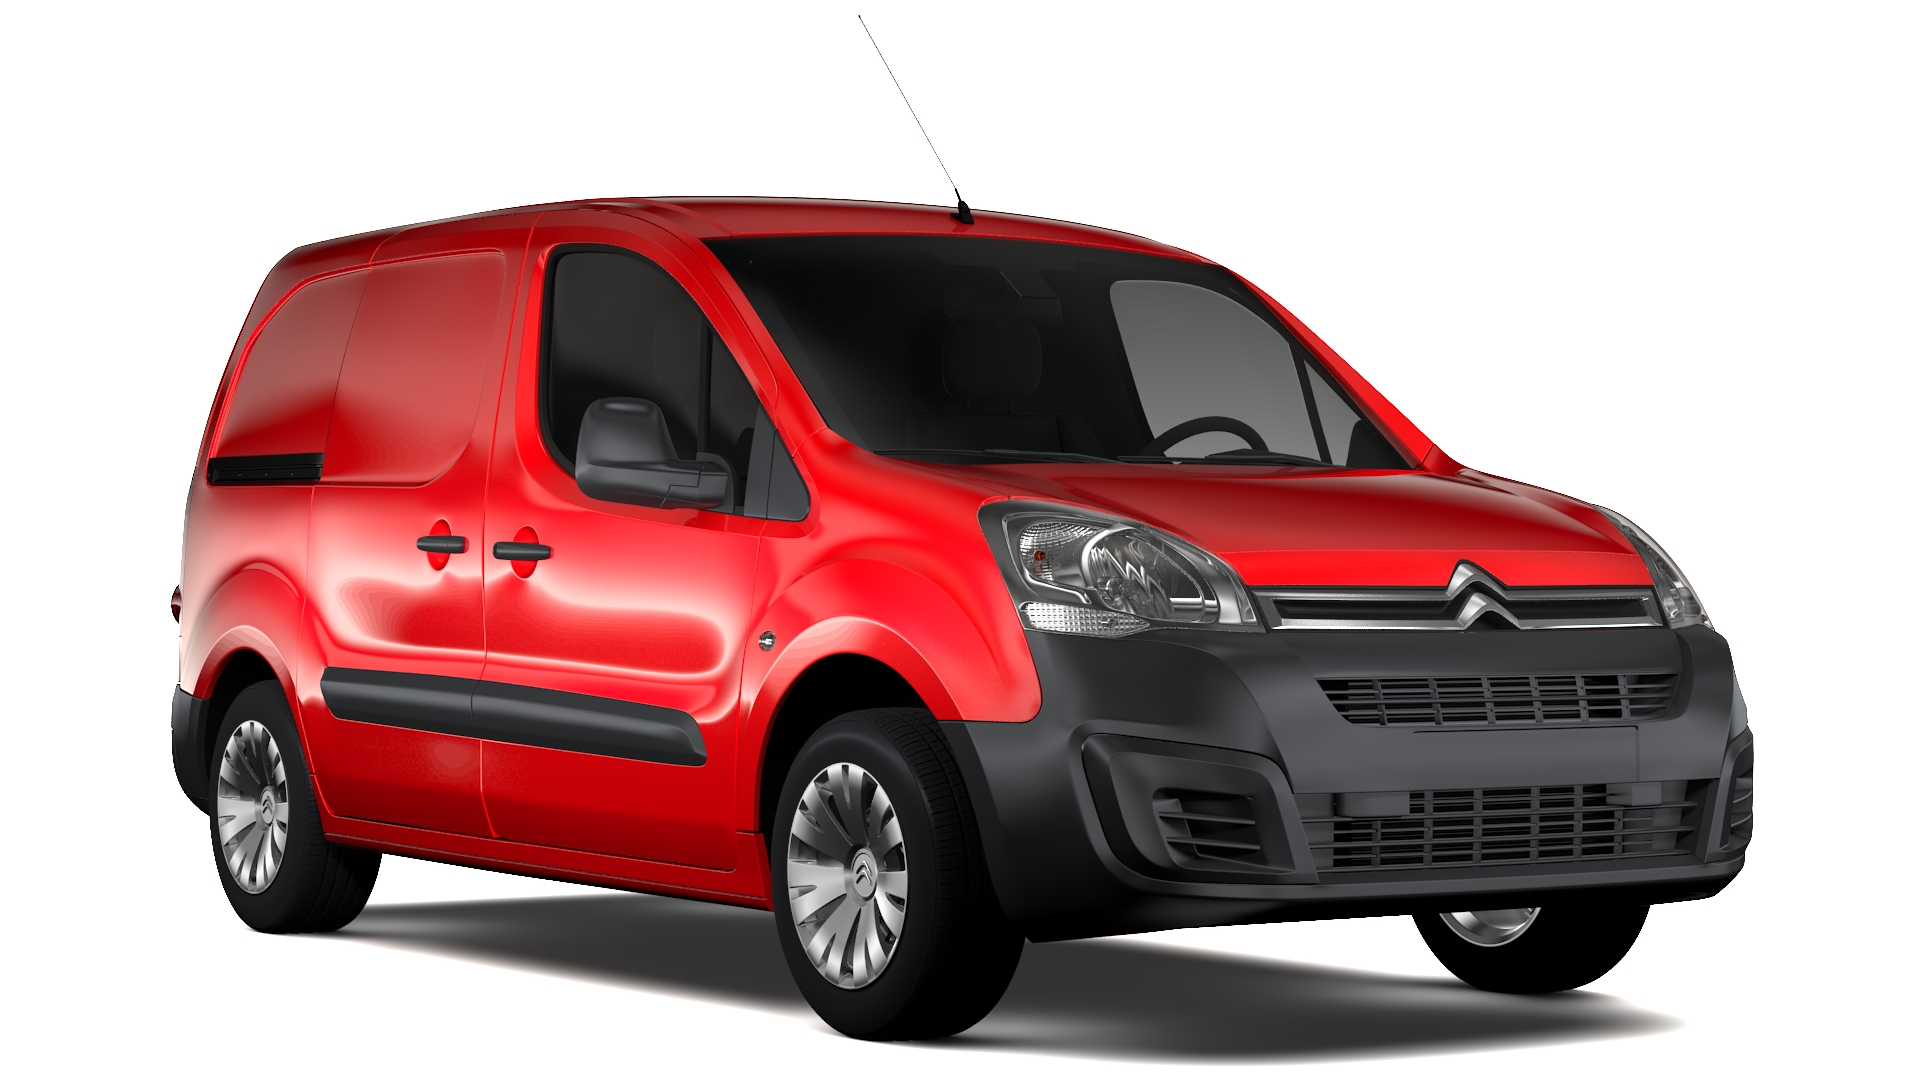 citroen berlingo van l1 2017 3d model buy citroen berlingo van l1 2017 3d model flatpyramid. Black Bedroom Furniture Sets. Home Design Ideas